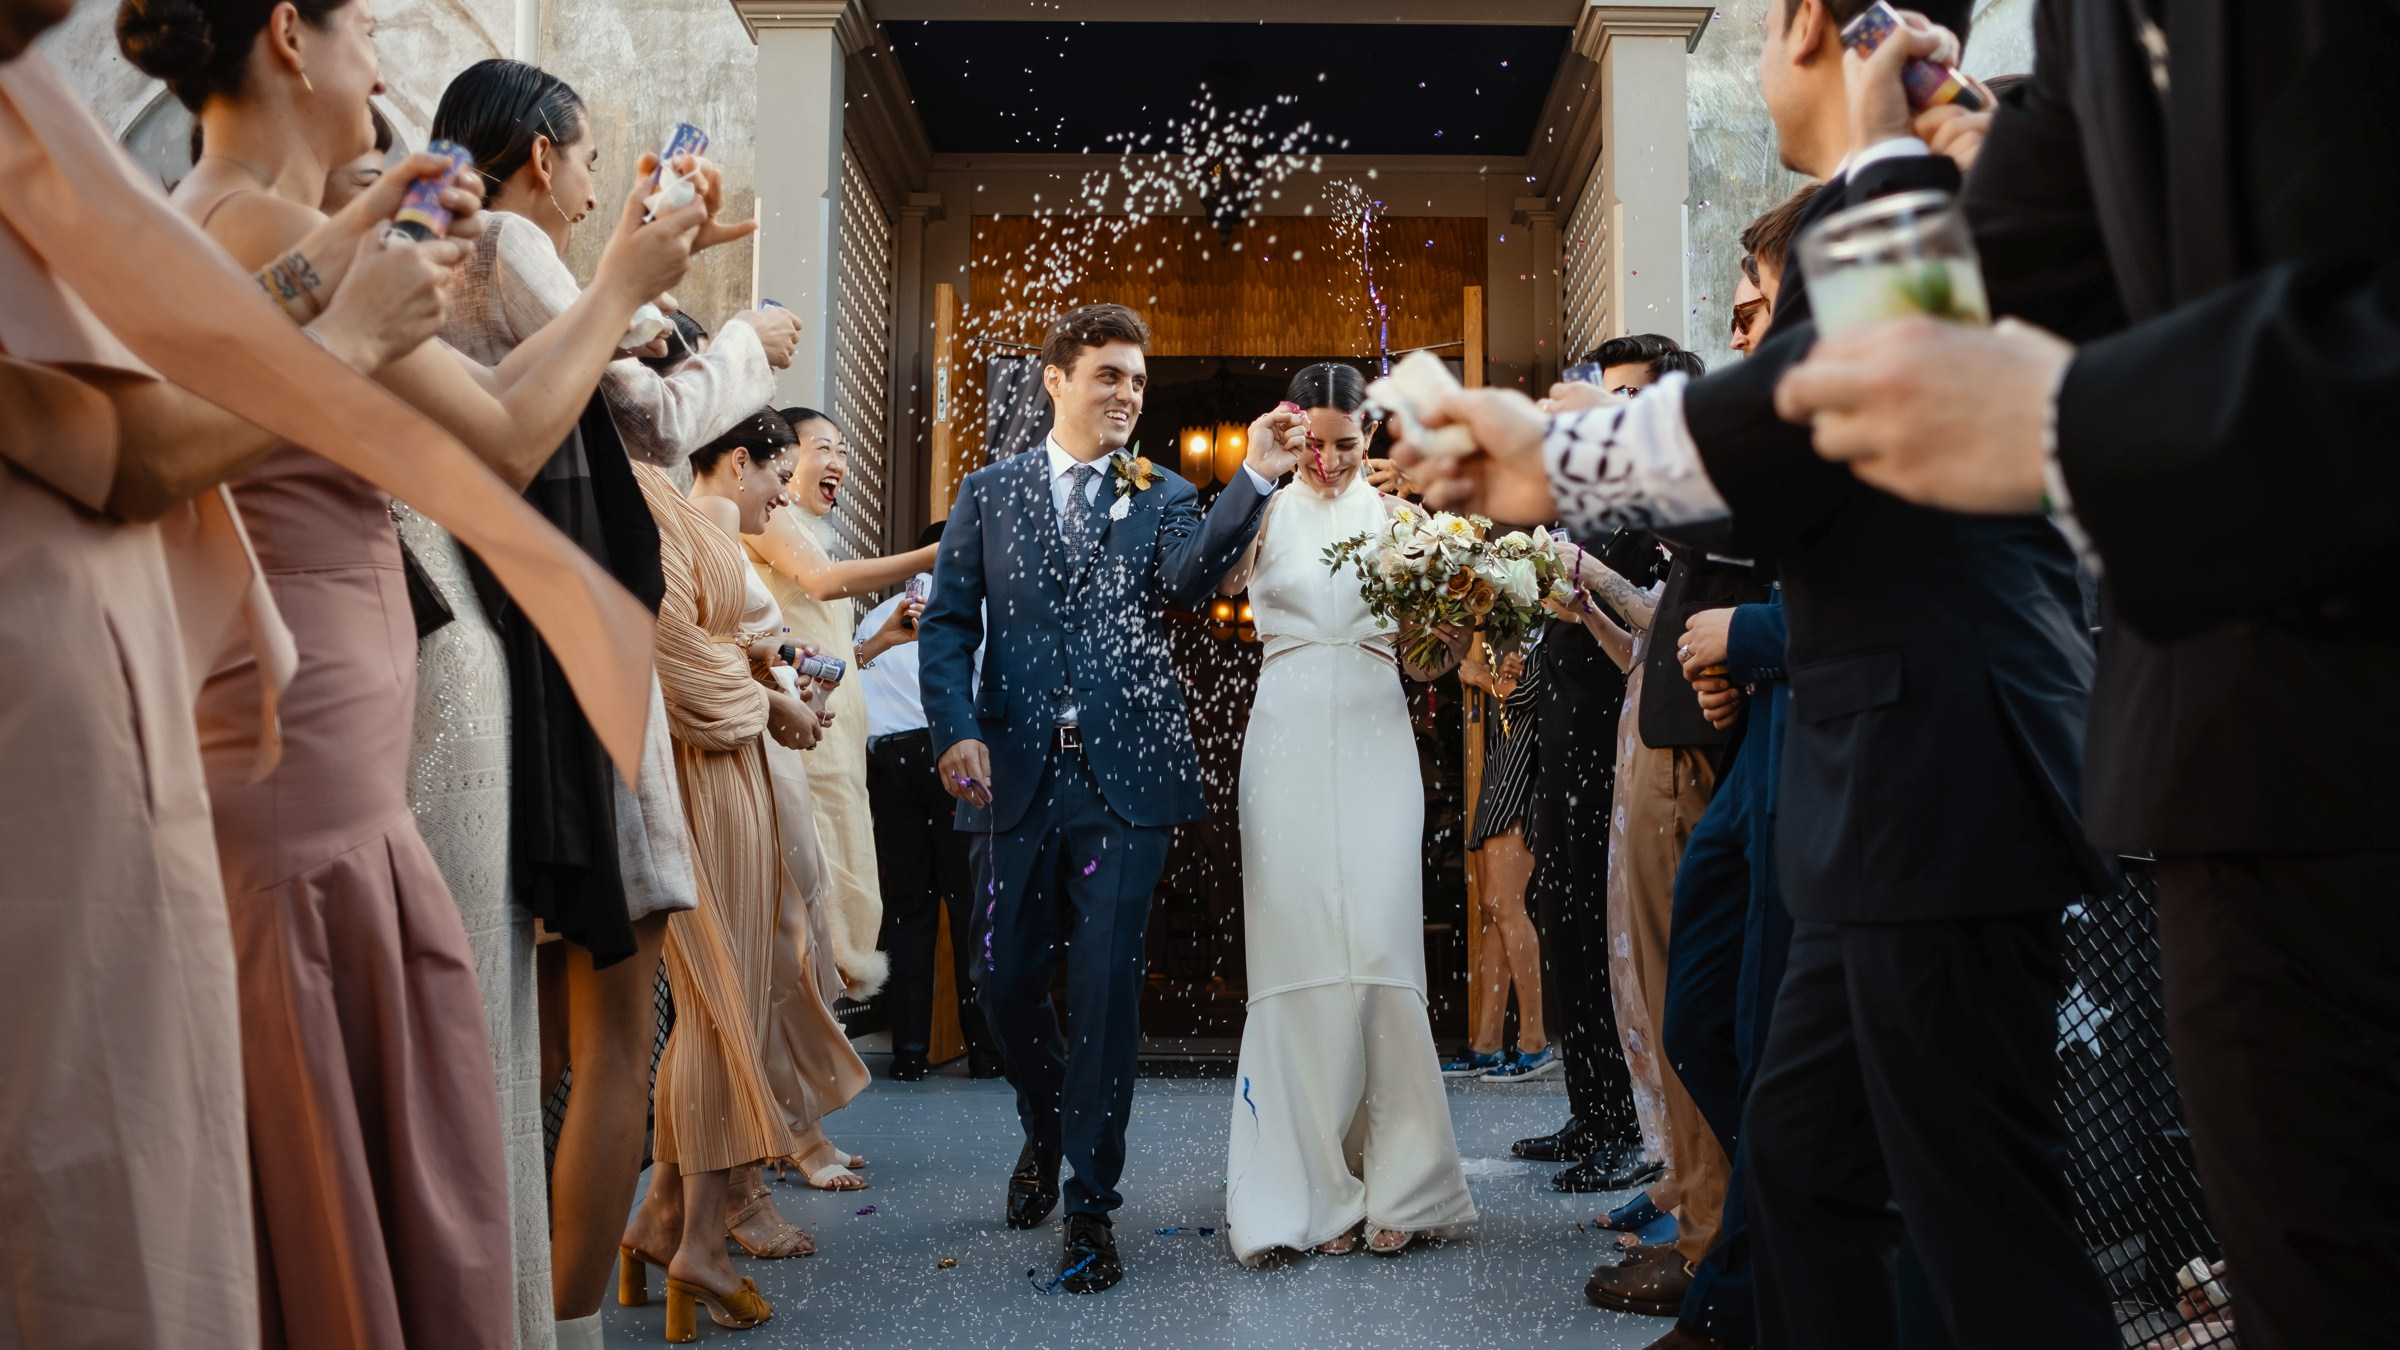 Couple recessional amid rice - photo by Dark Roux